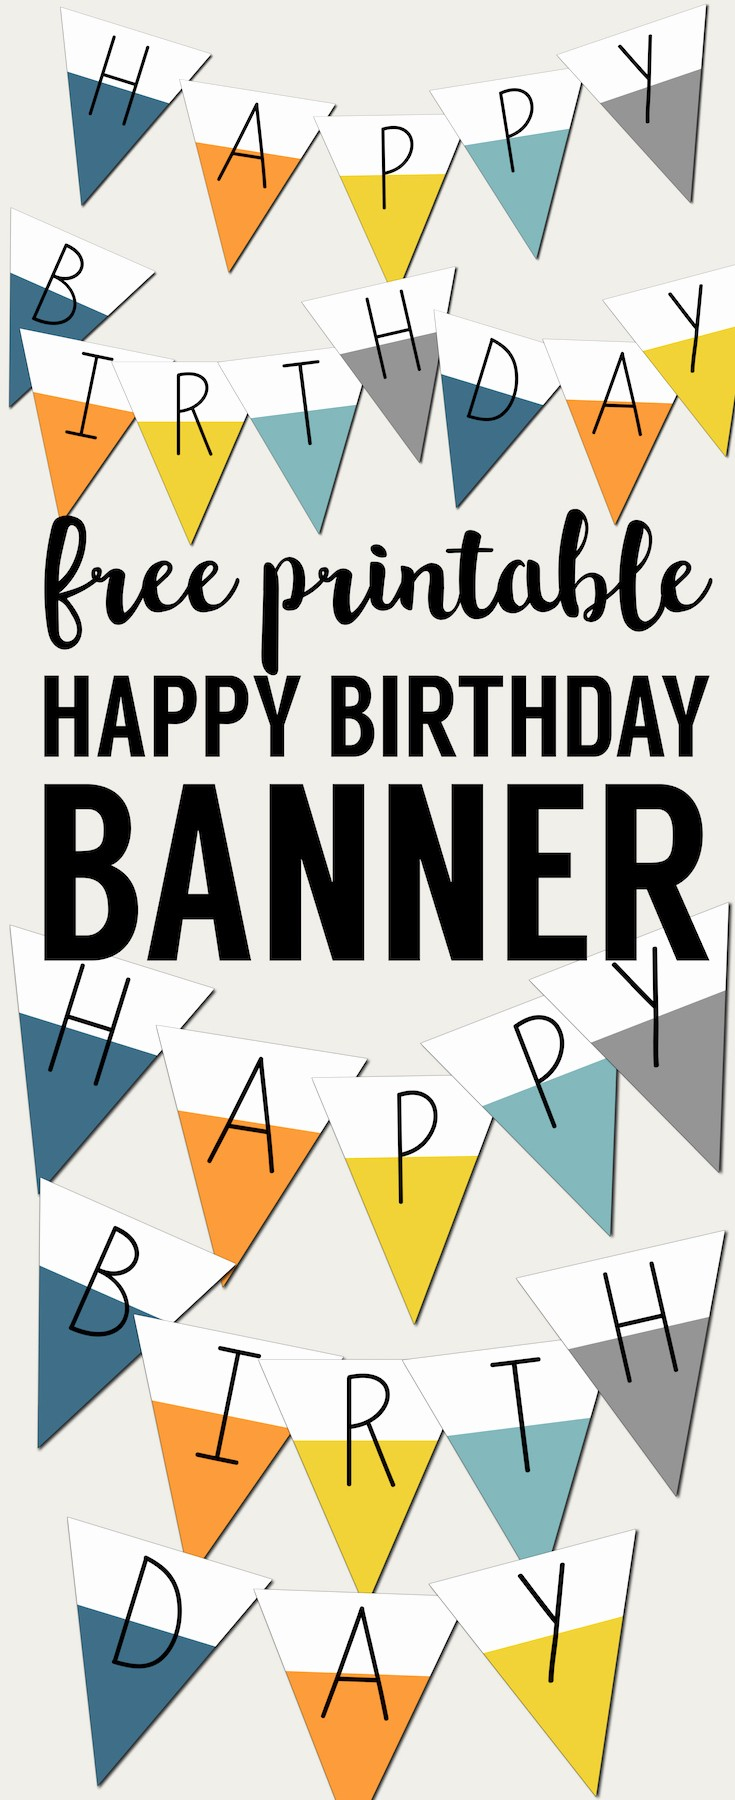 Happy Birthday Banner Print Out Lovely Free Printable Happy Birthday Banner Paper Trail Design